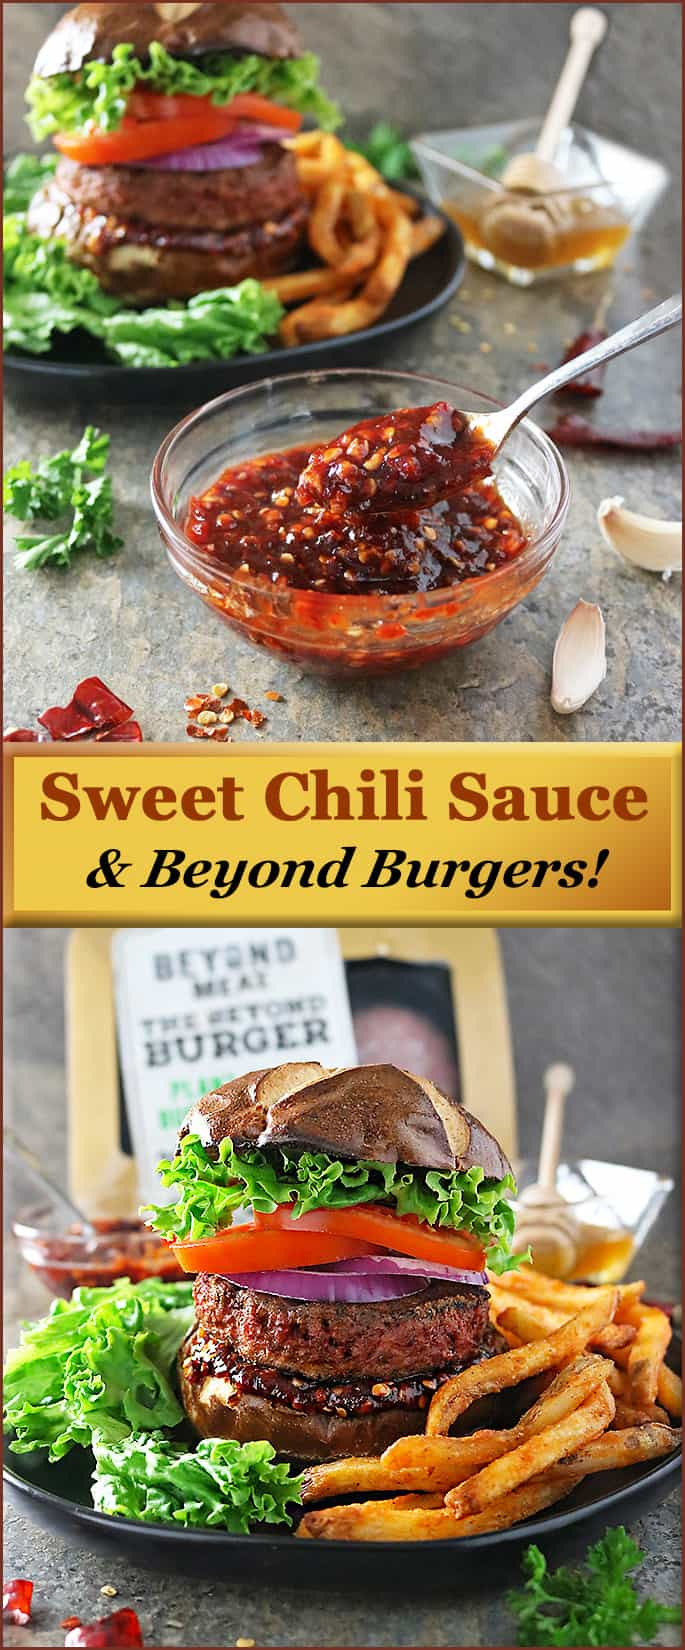 This post is sponsored by Beyond Meat.